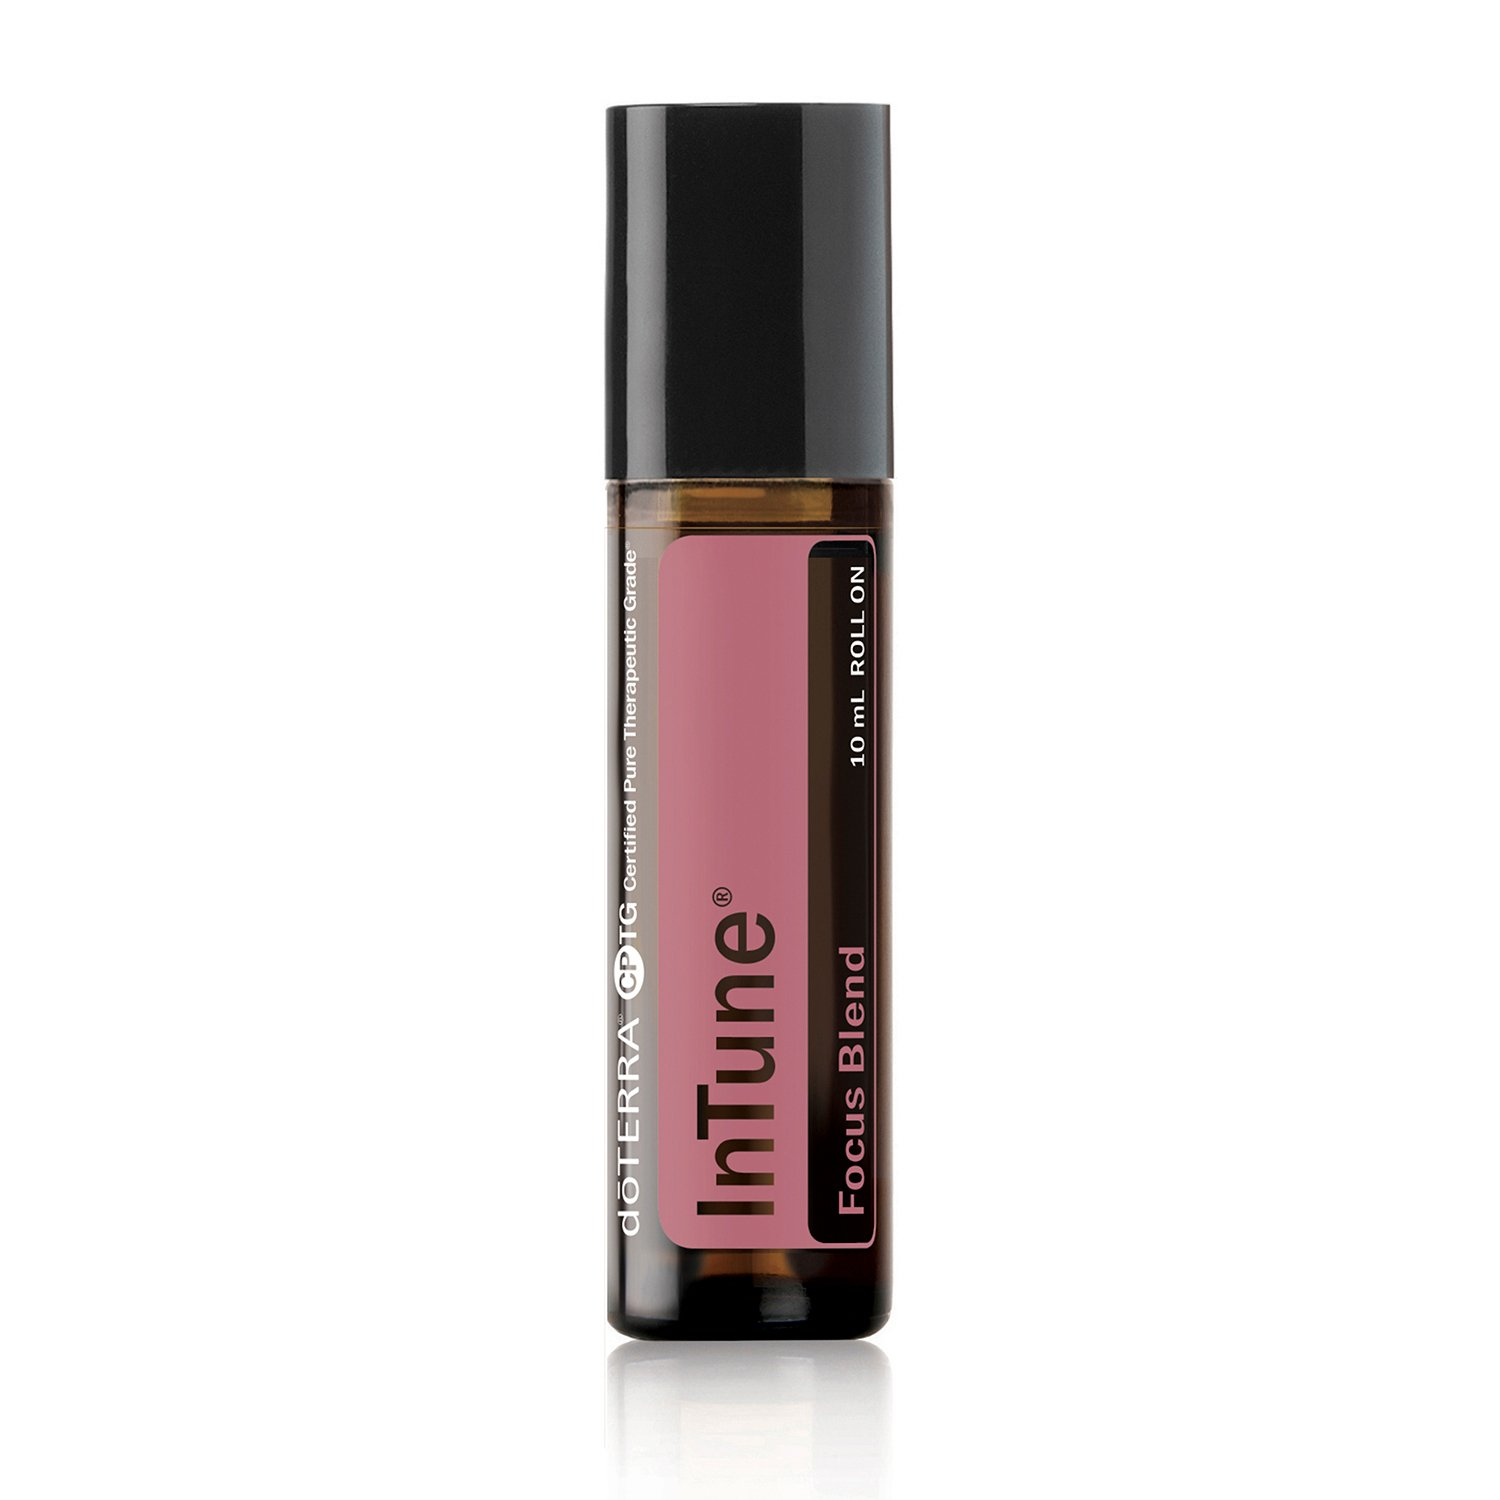 doTERRA - InTune Essential Oil Focus Blend Roll On - Supports Enhanced, Sustained Sense of Focus; Supports Efforts to Pay Attention or Stay On Task; For Topical Use - 10 mL